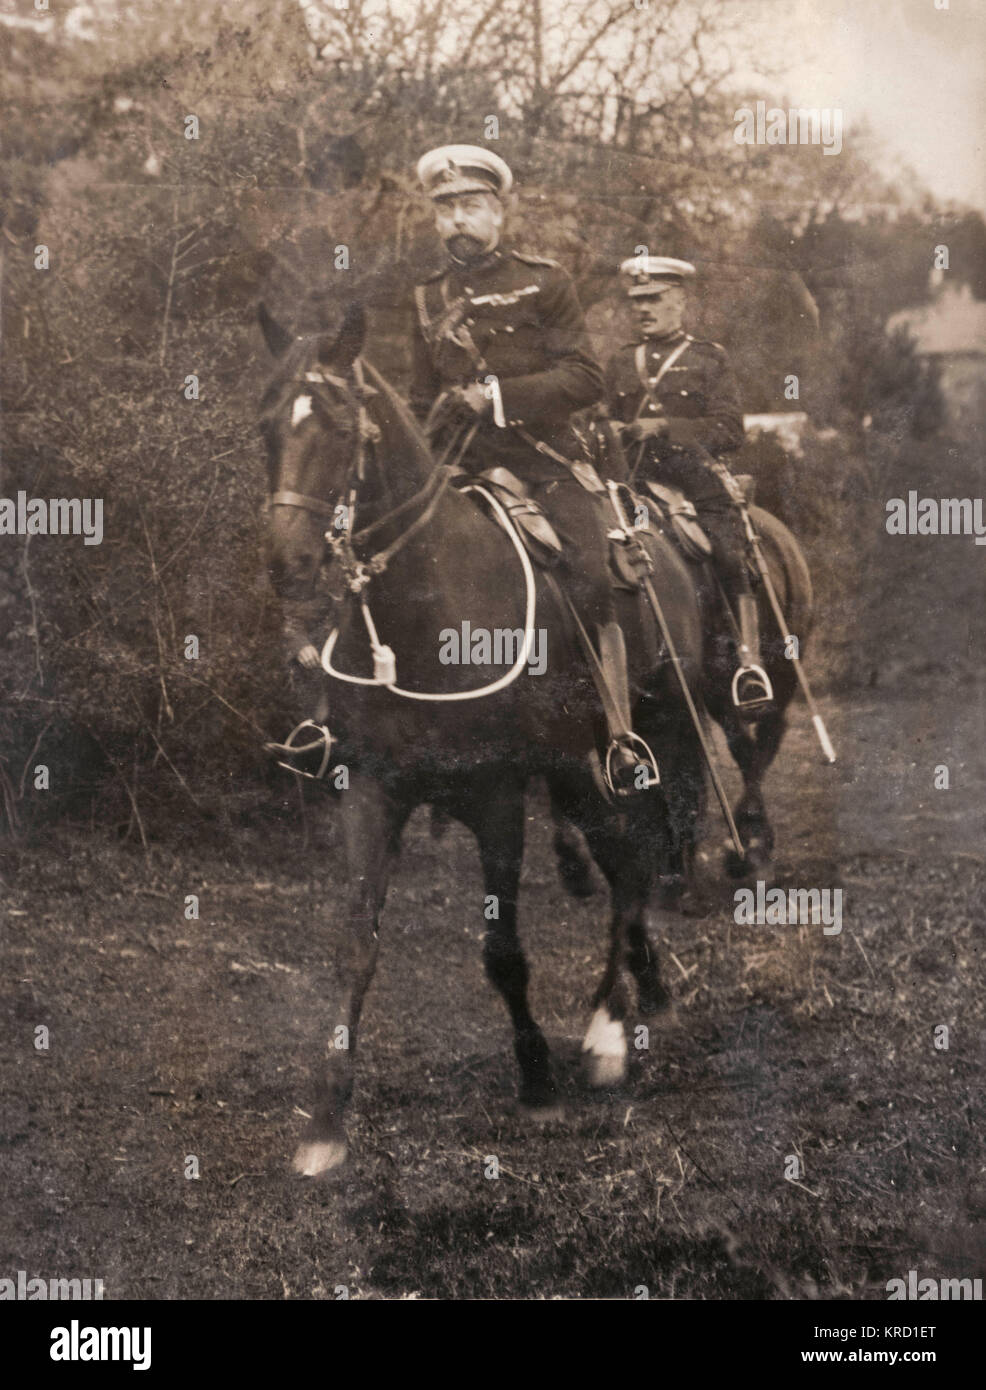 The Prince of Wales (soon to be George V) taking part in military manoeuvres near Aldershot in Hampshire.       - Stock Image